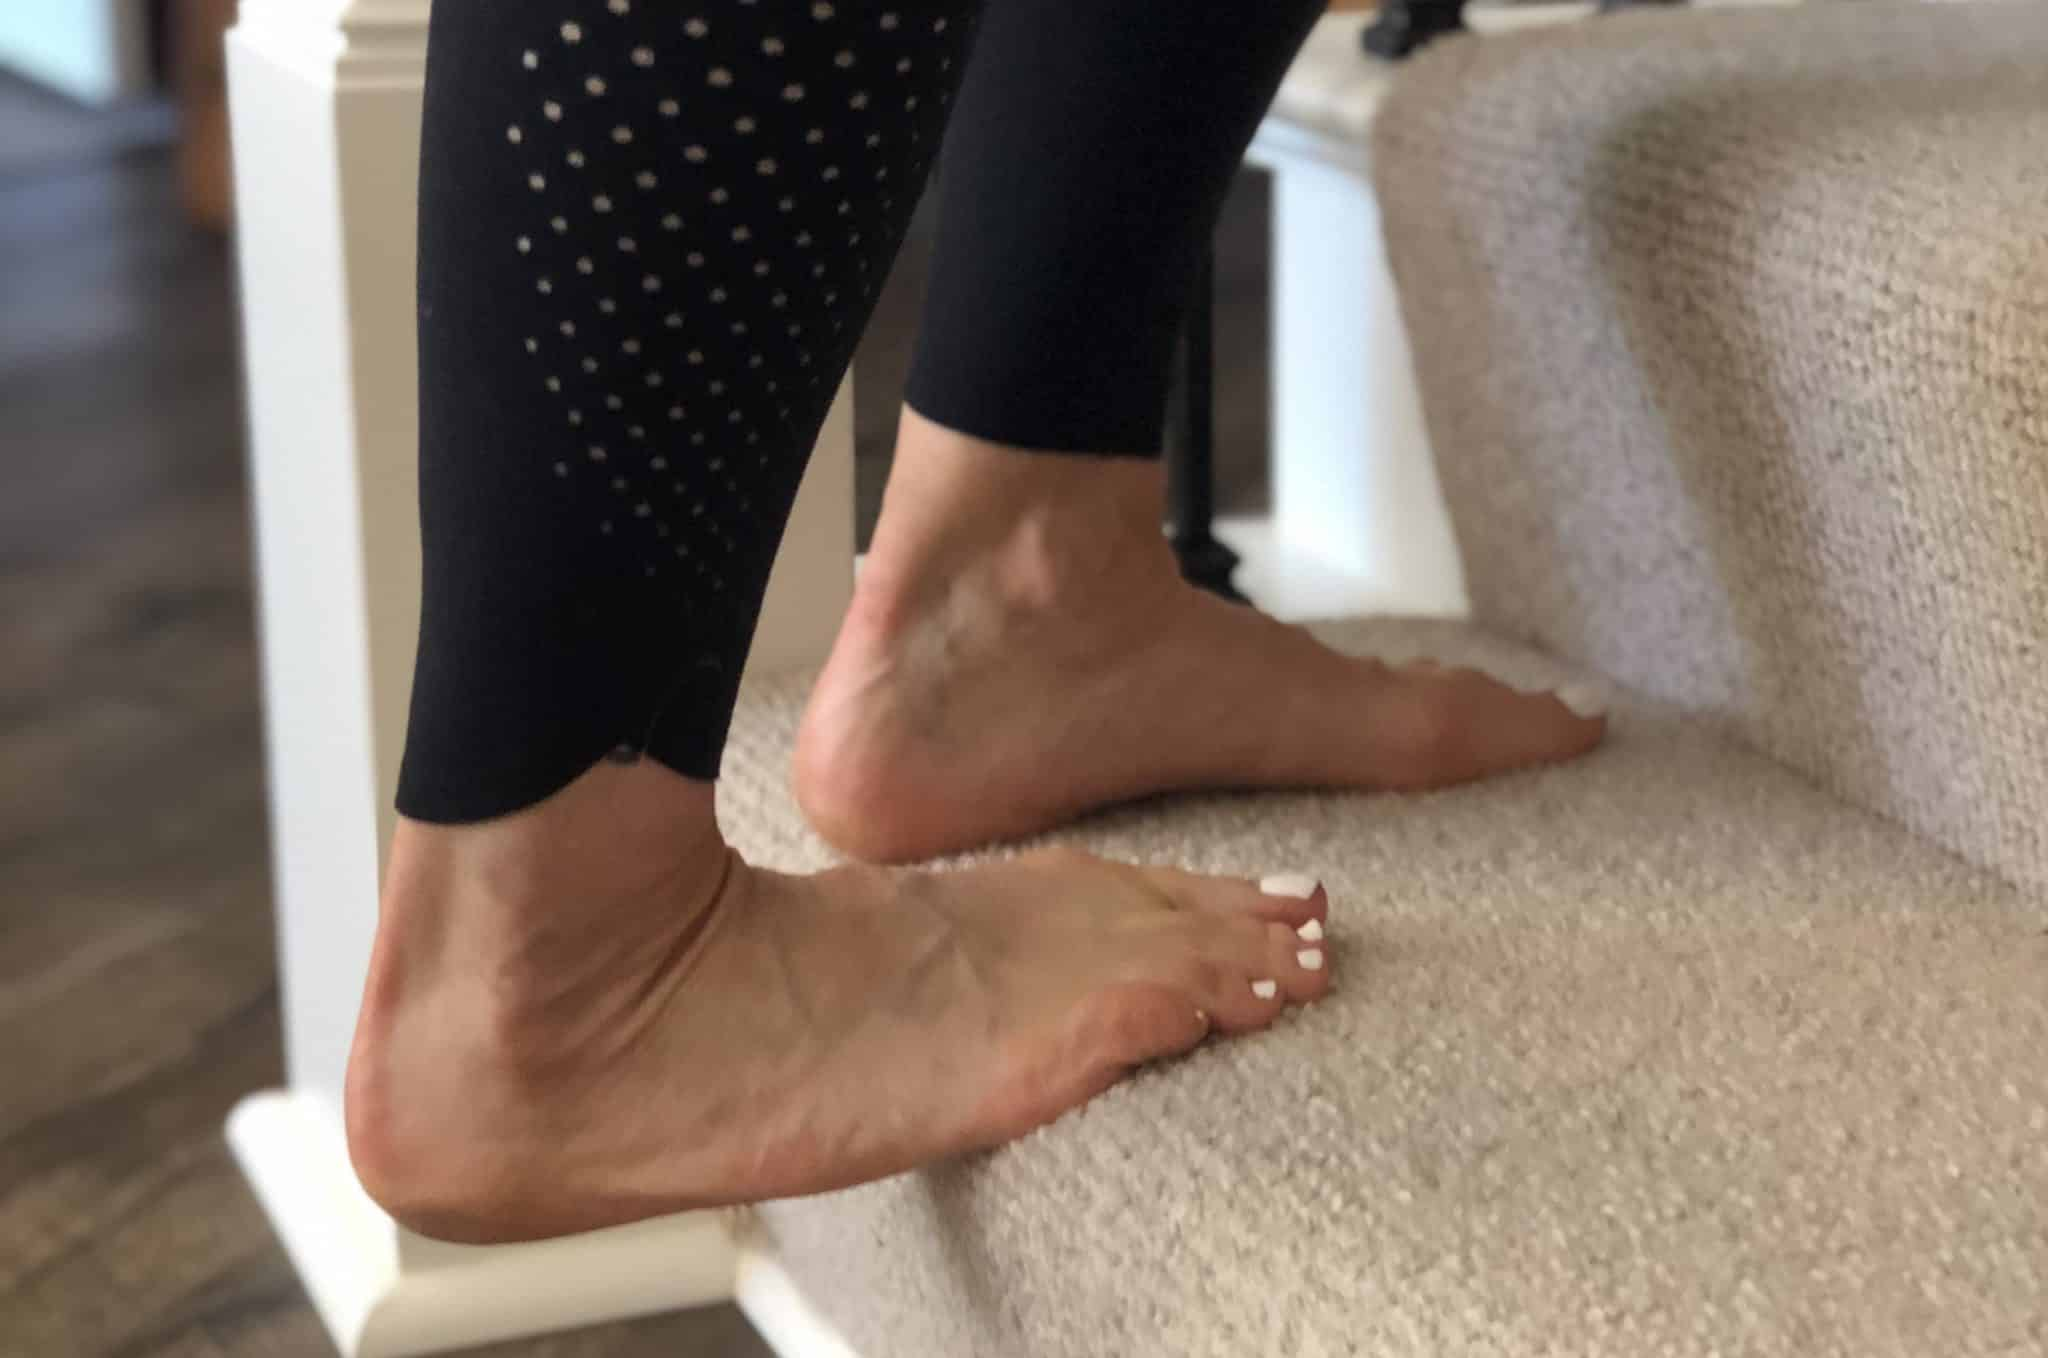 Step stretch for plantar fasciitis pain